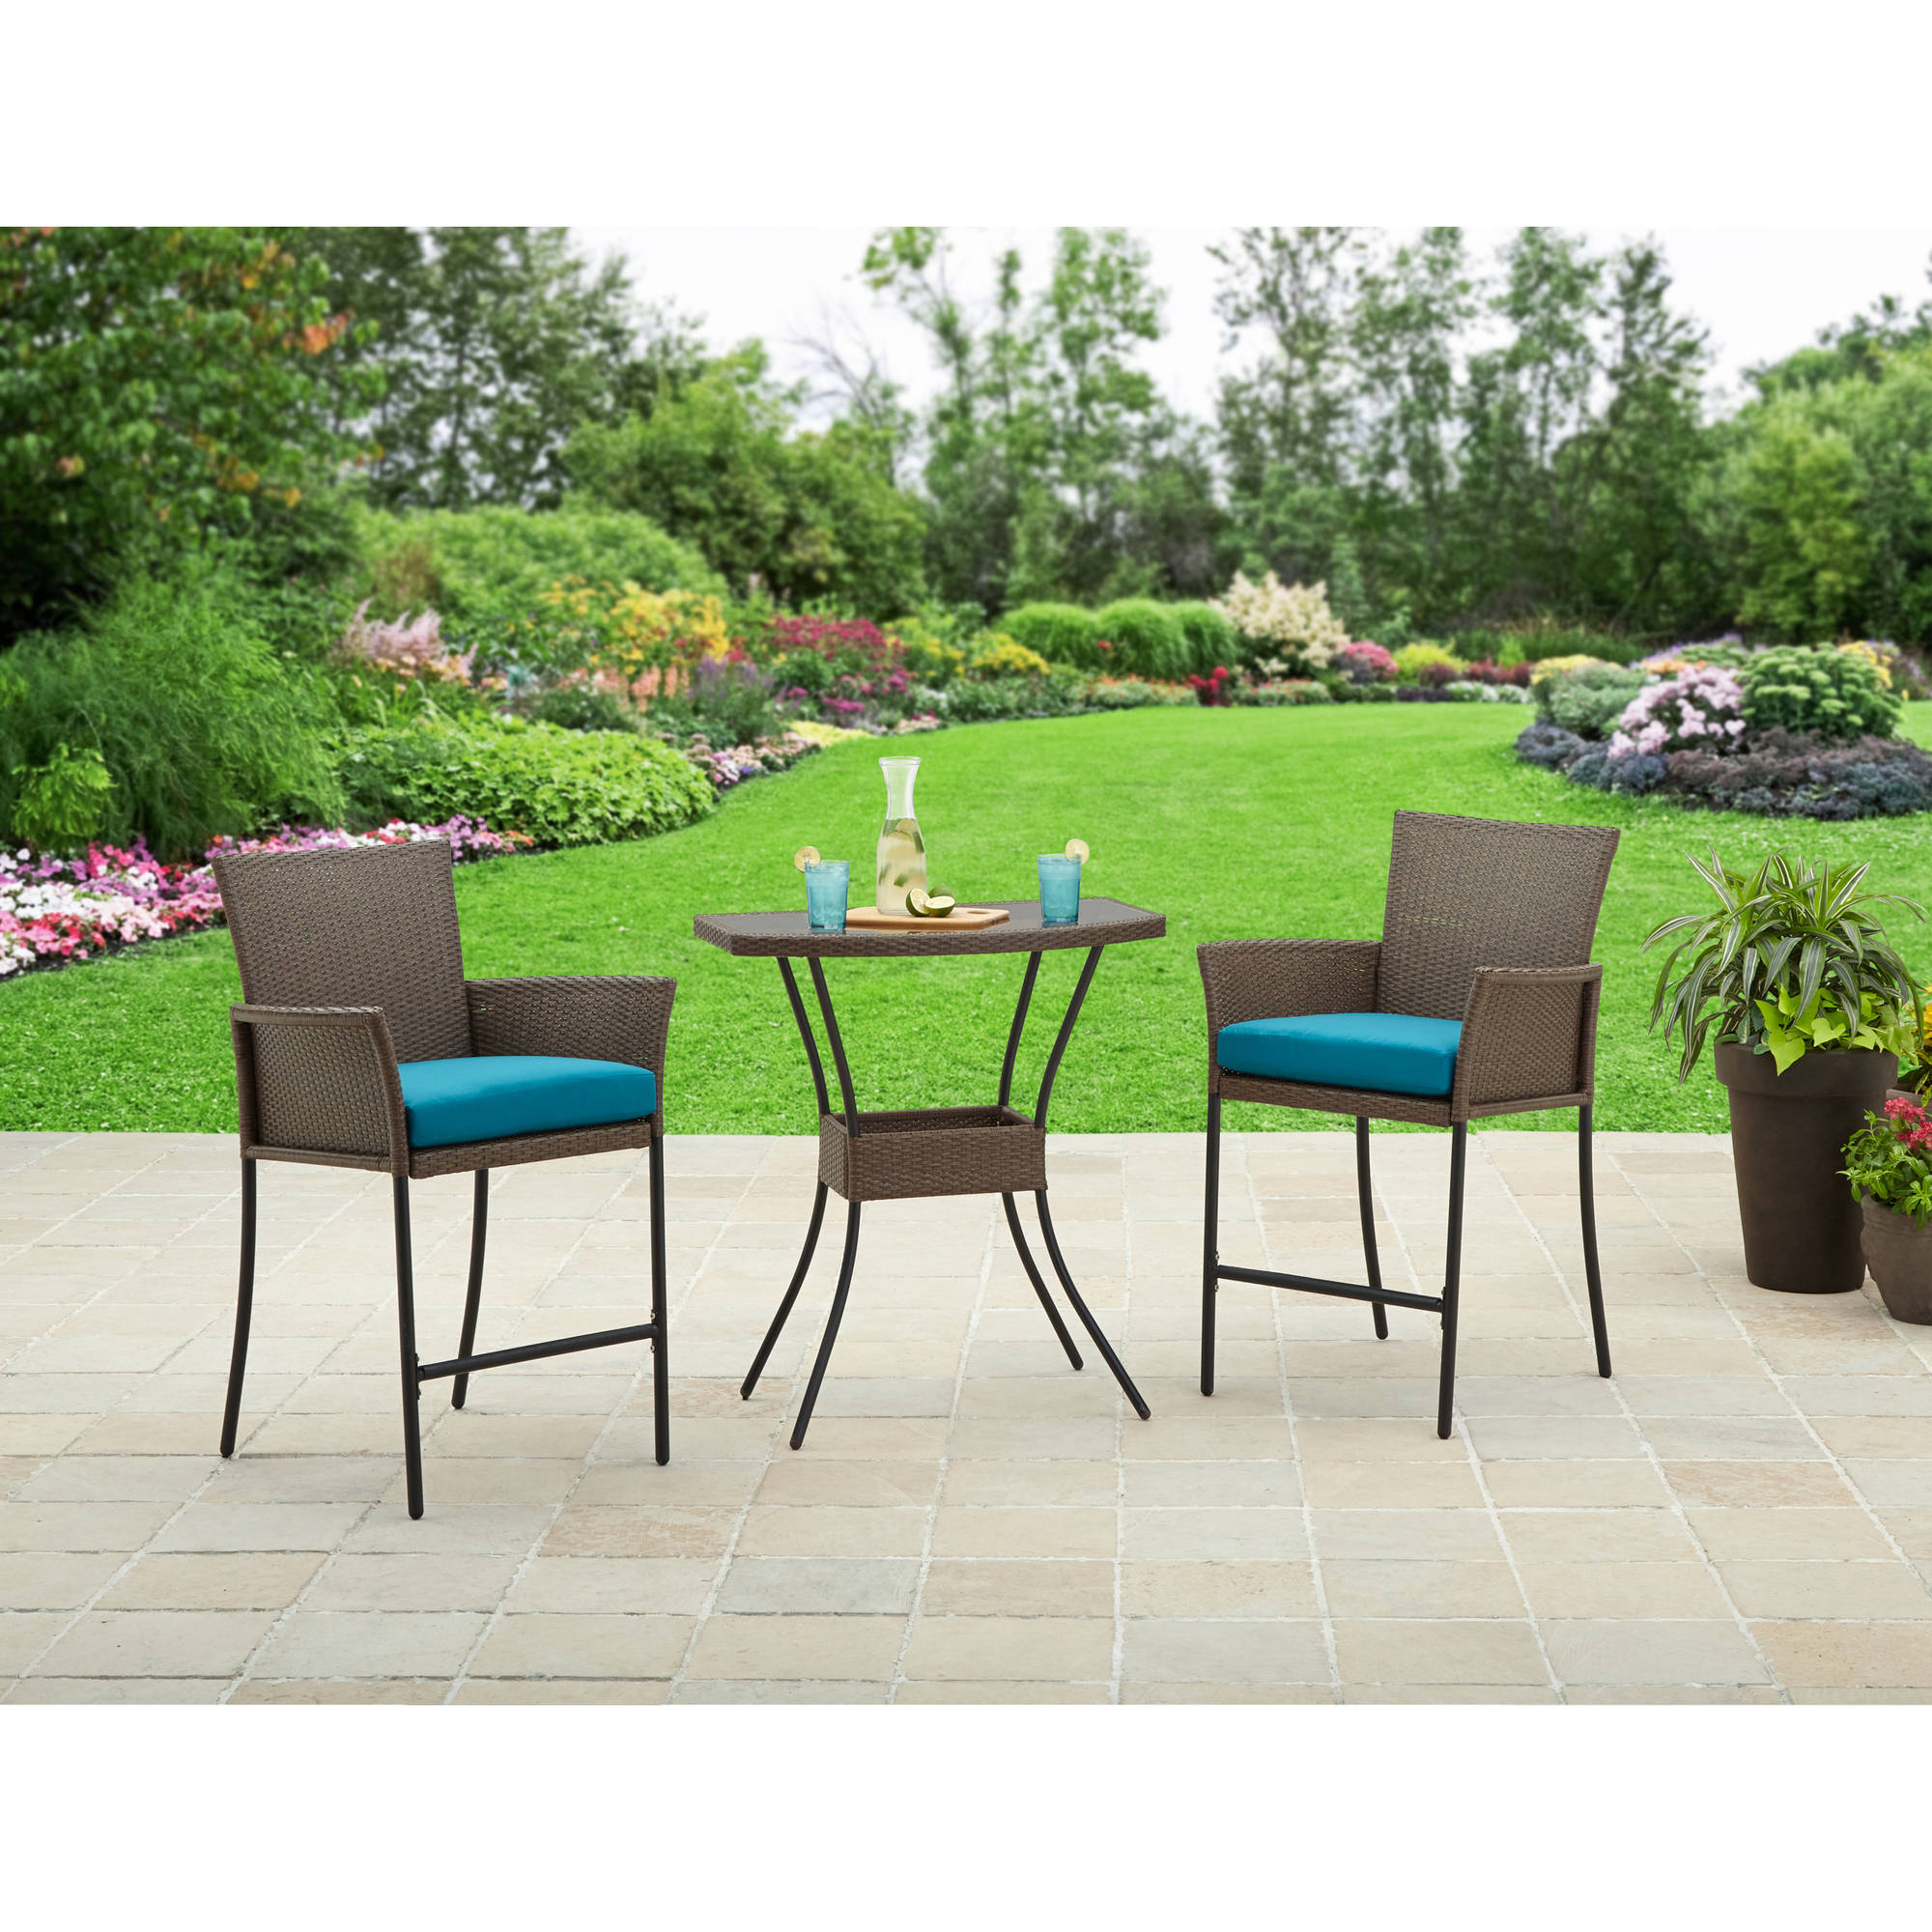 Better Homes and Gardens Fairfield Bay 3-Piece Balcony Bistro Set by Dalian Evert Industry Co.,Ltd